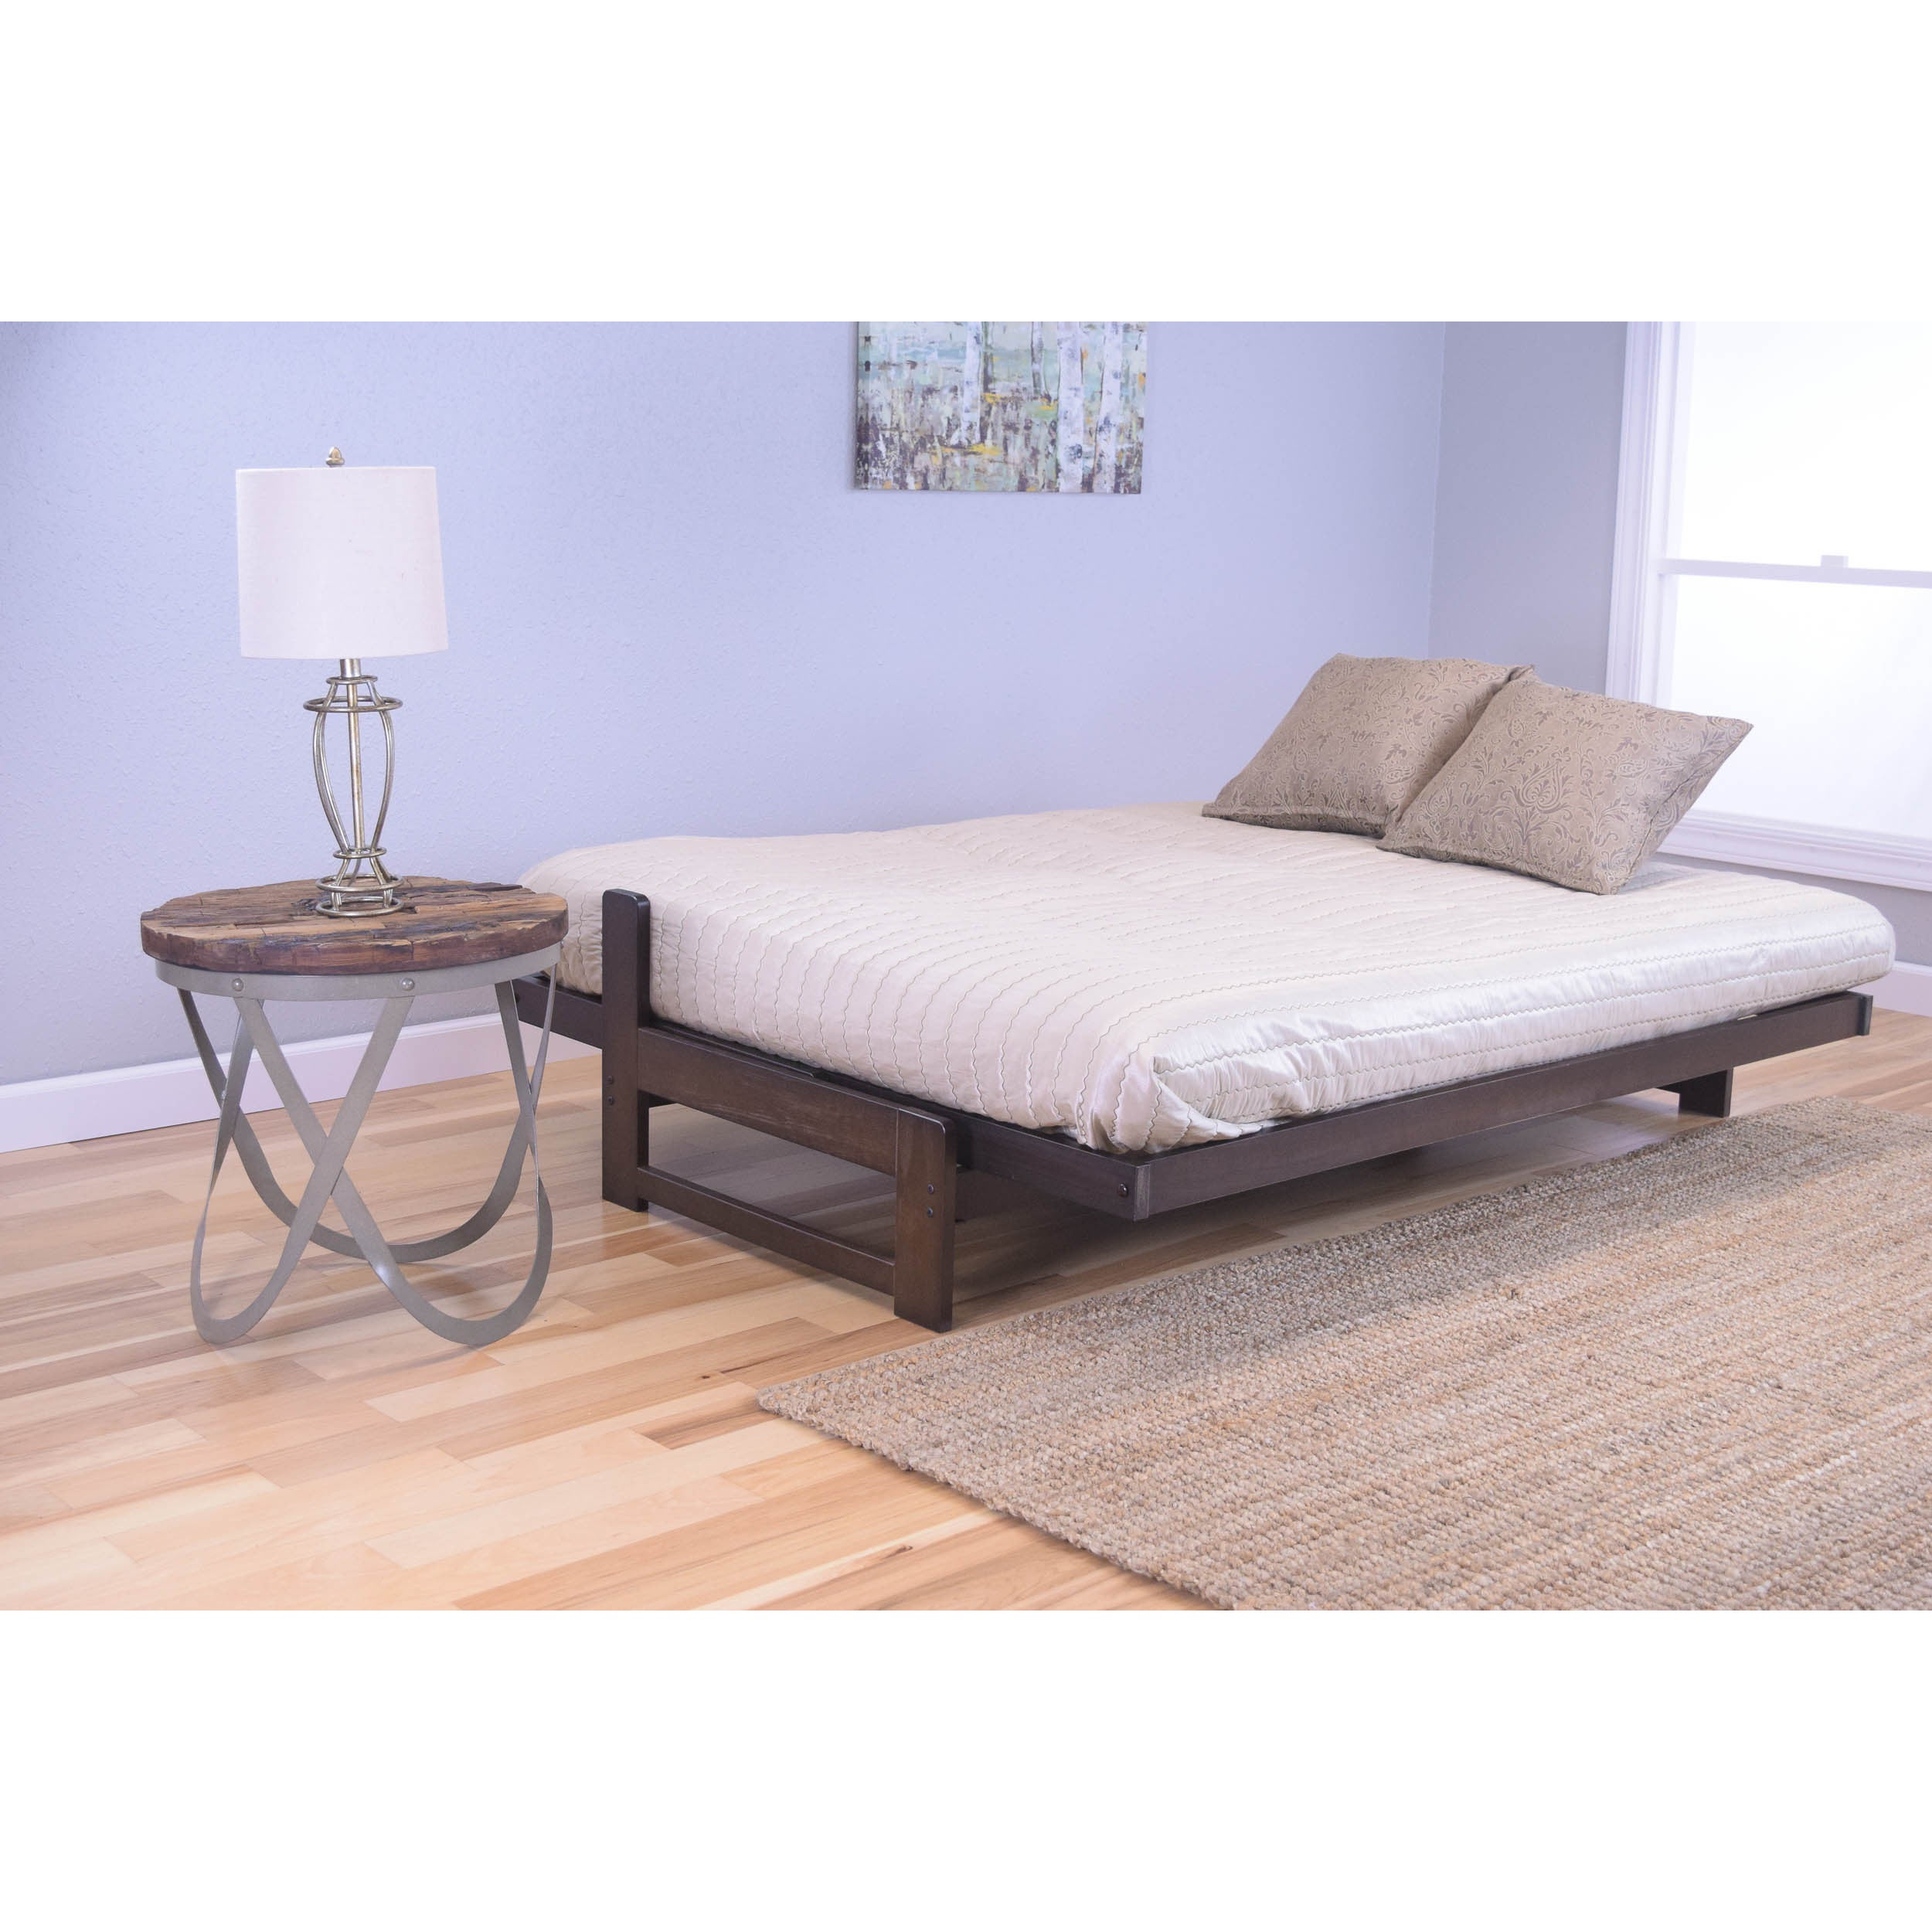 Pine Canopy Uncompahgre Rustic Mocha Futon Frame With Mattress Free Shipping Today Com 11526380